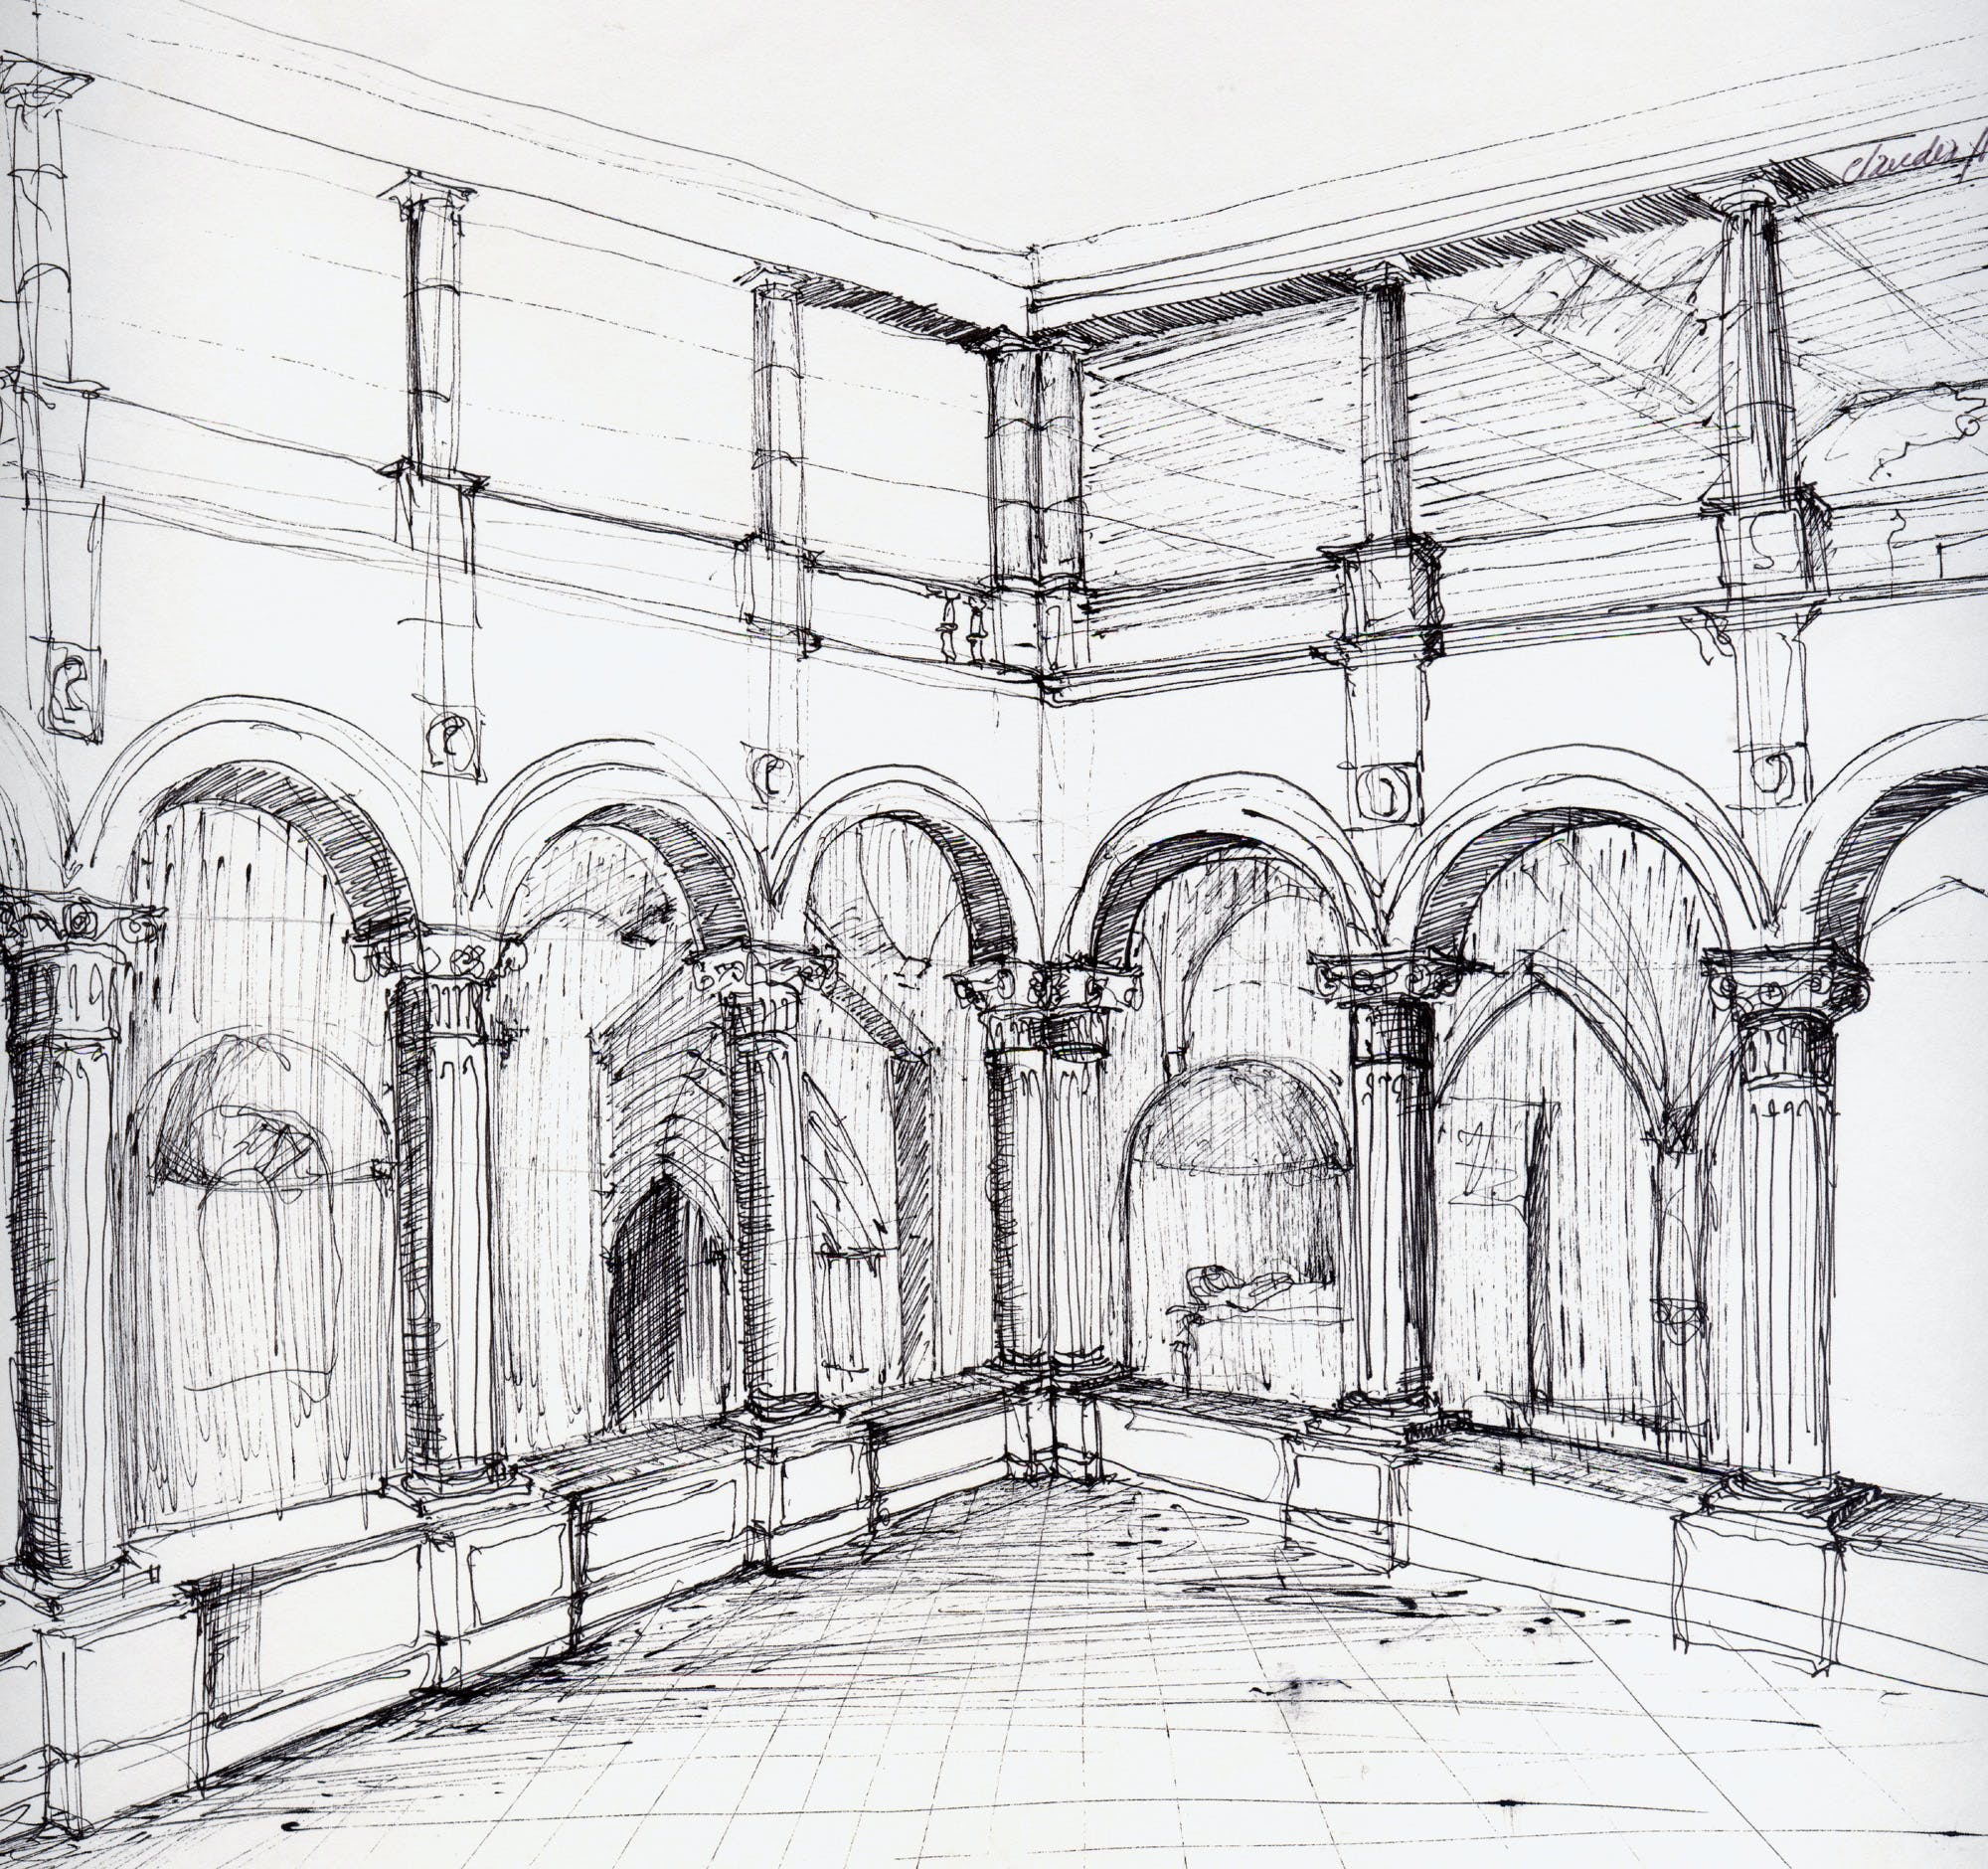 Free hand drawing cl udia lima archinect for Free online drawing